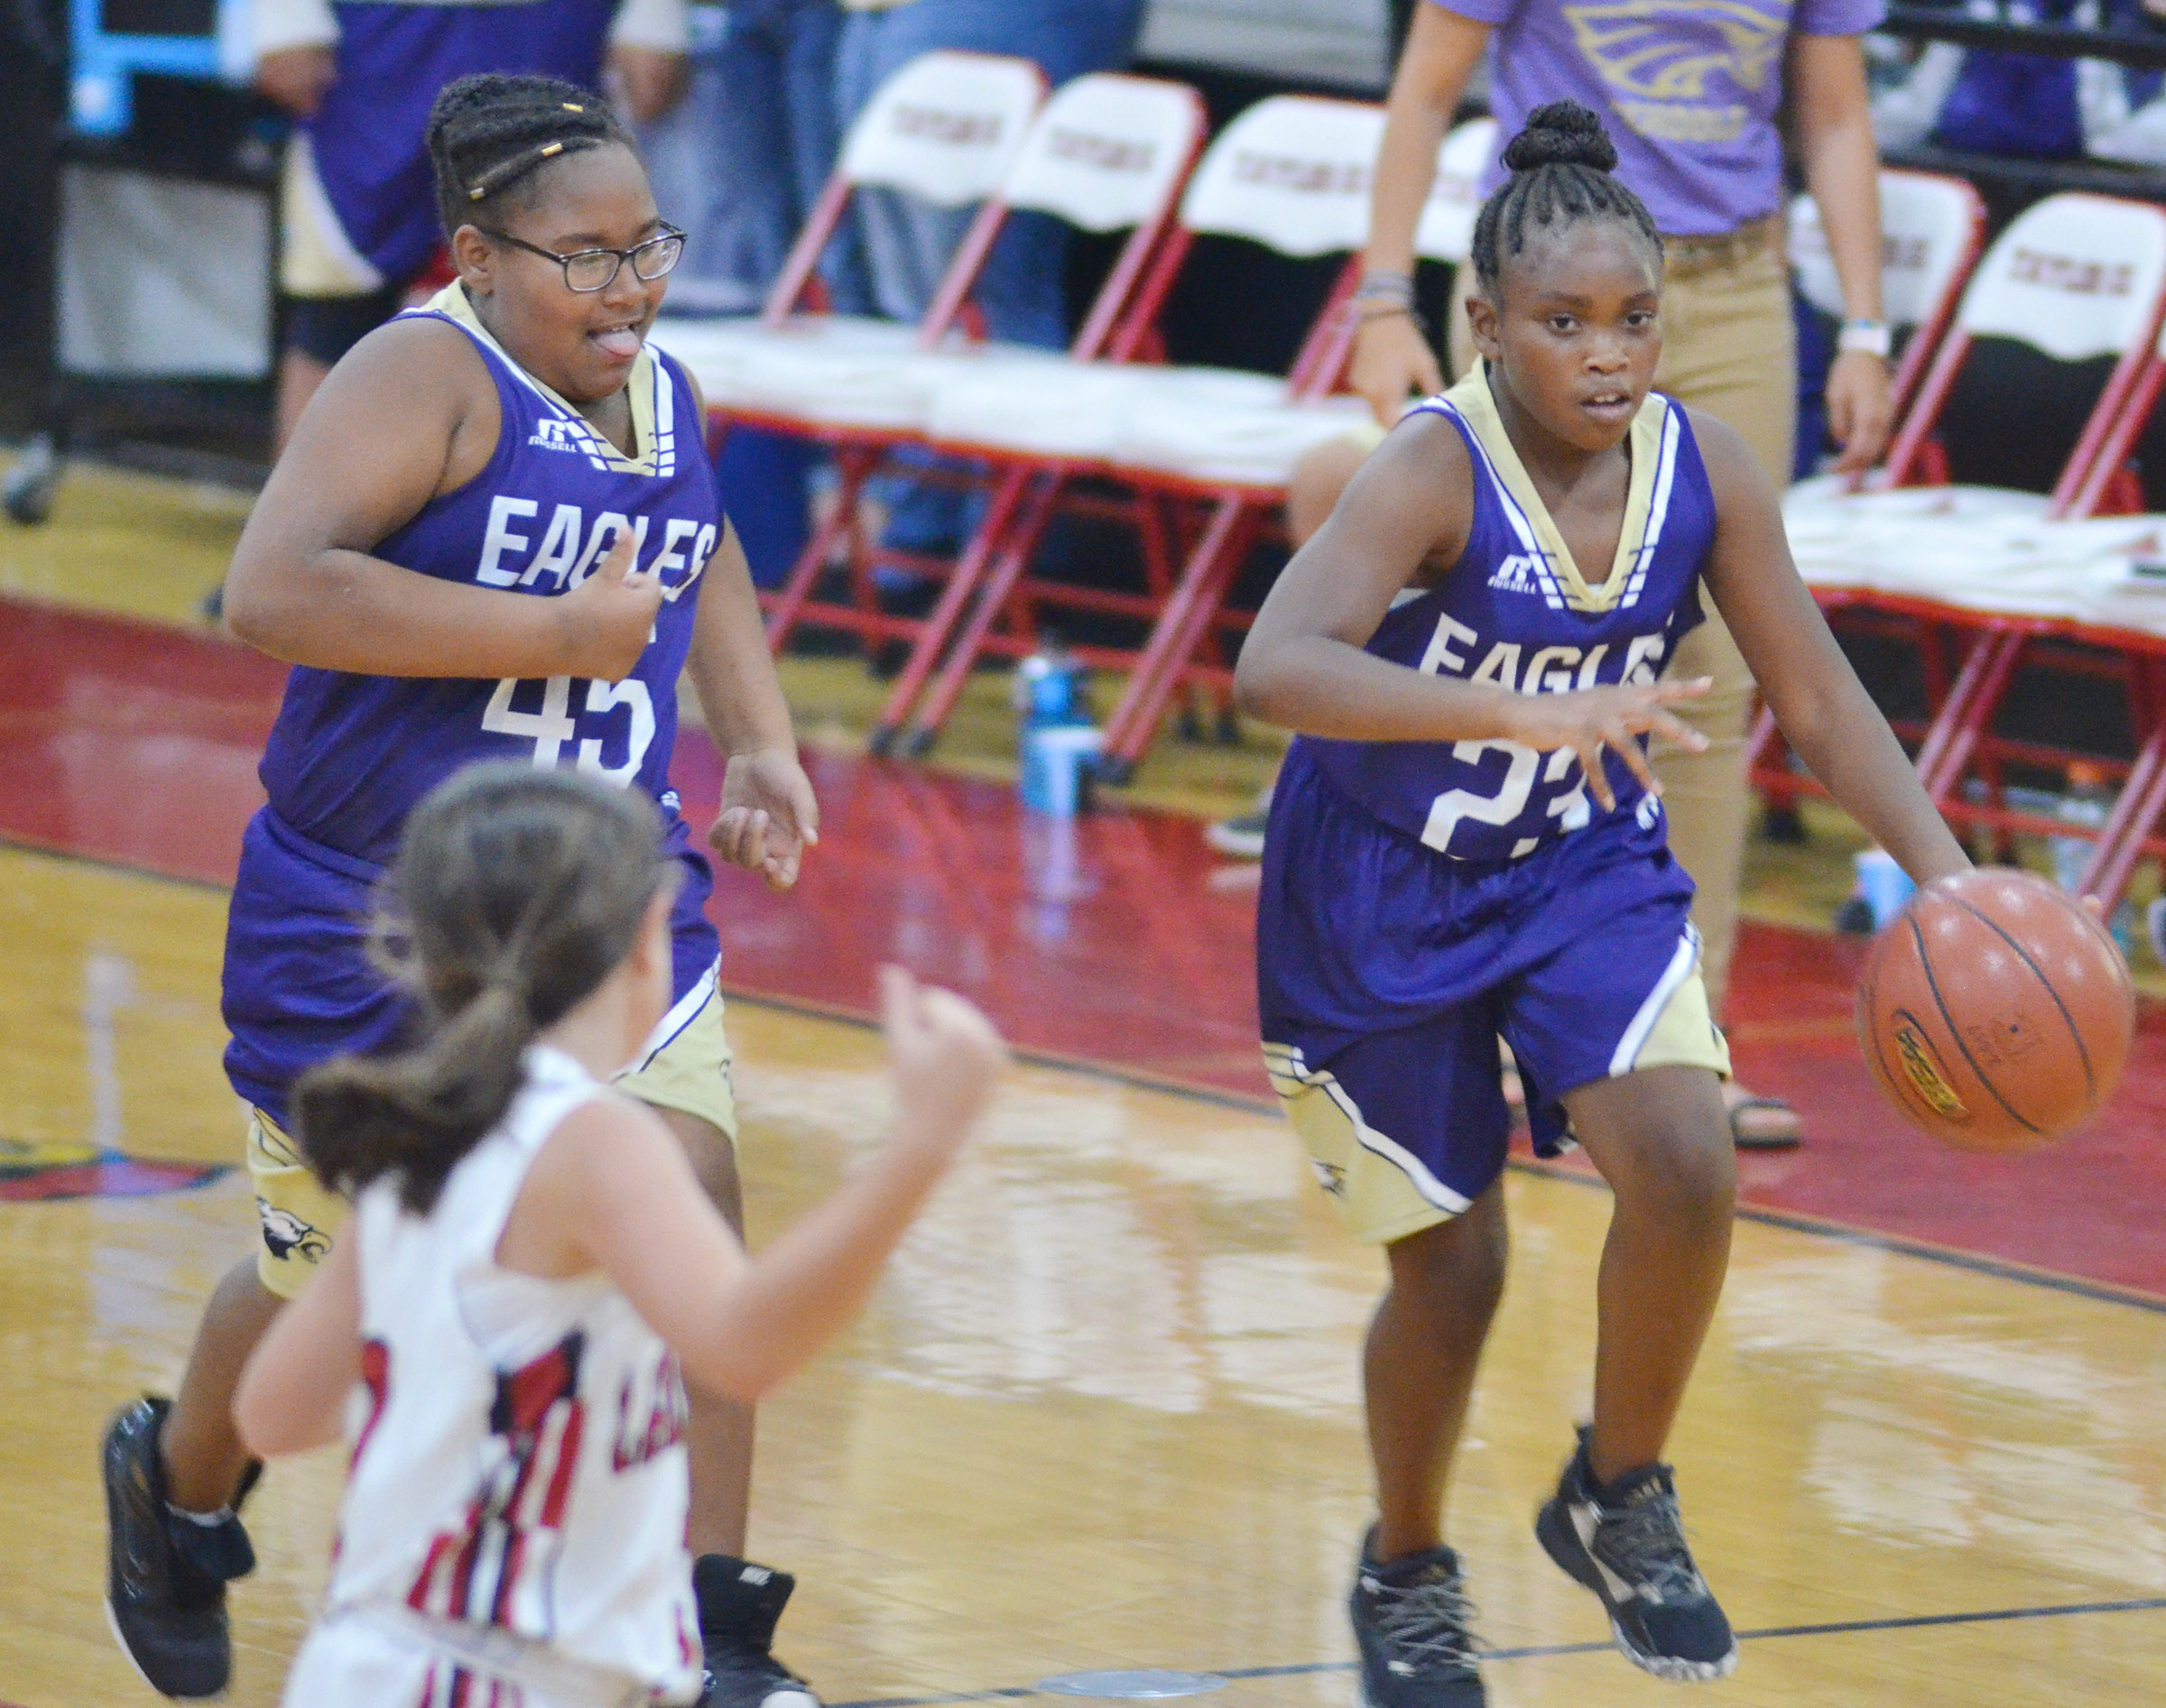 CMS sixth-grader KyAshia Mitchell, at left, and Campbellsville Elementary School fifth-grader Ta'Zaria Owens run to the basket.